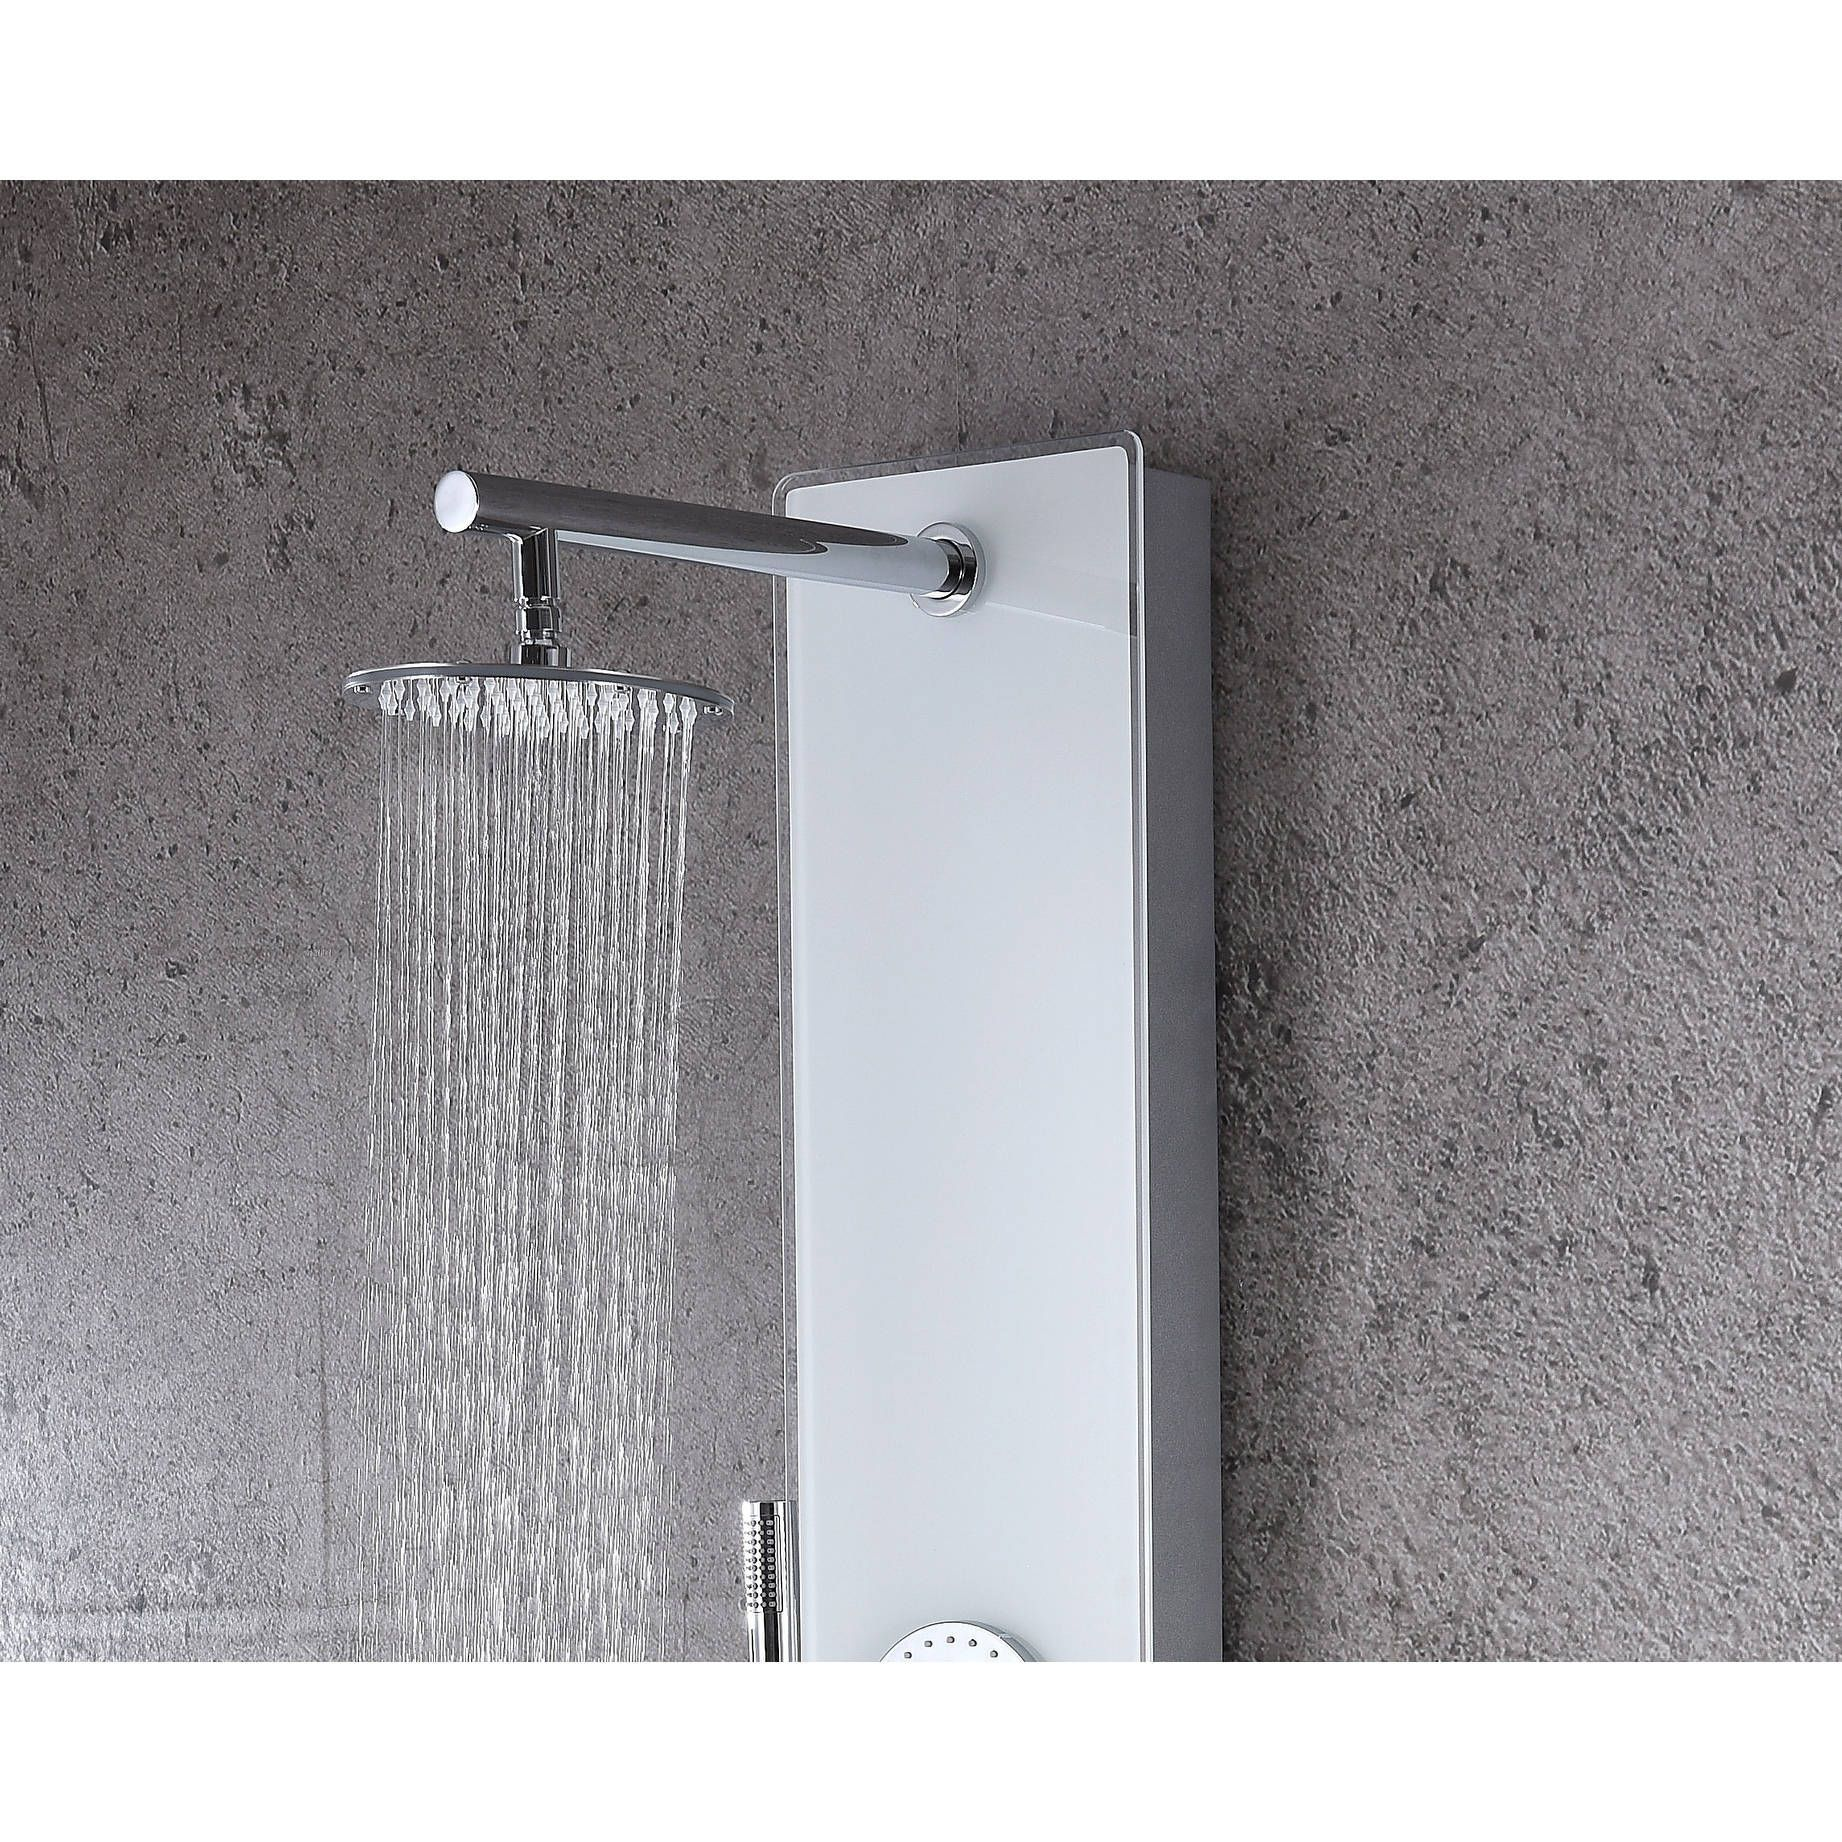 Anzzi Lynn 3 Jetted Full Body Shower Panel With Heavy Rain Shower In